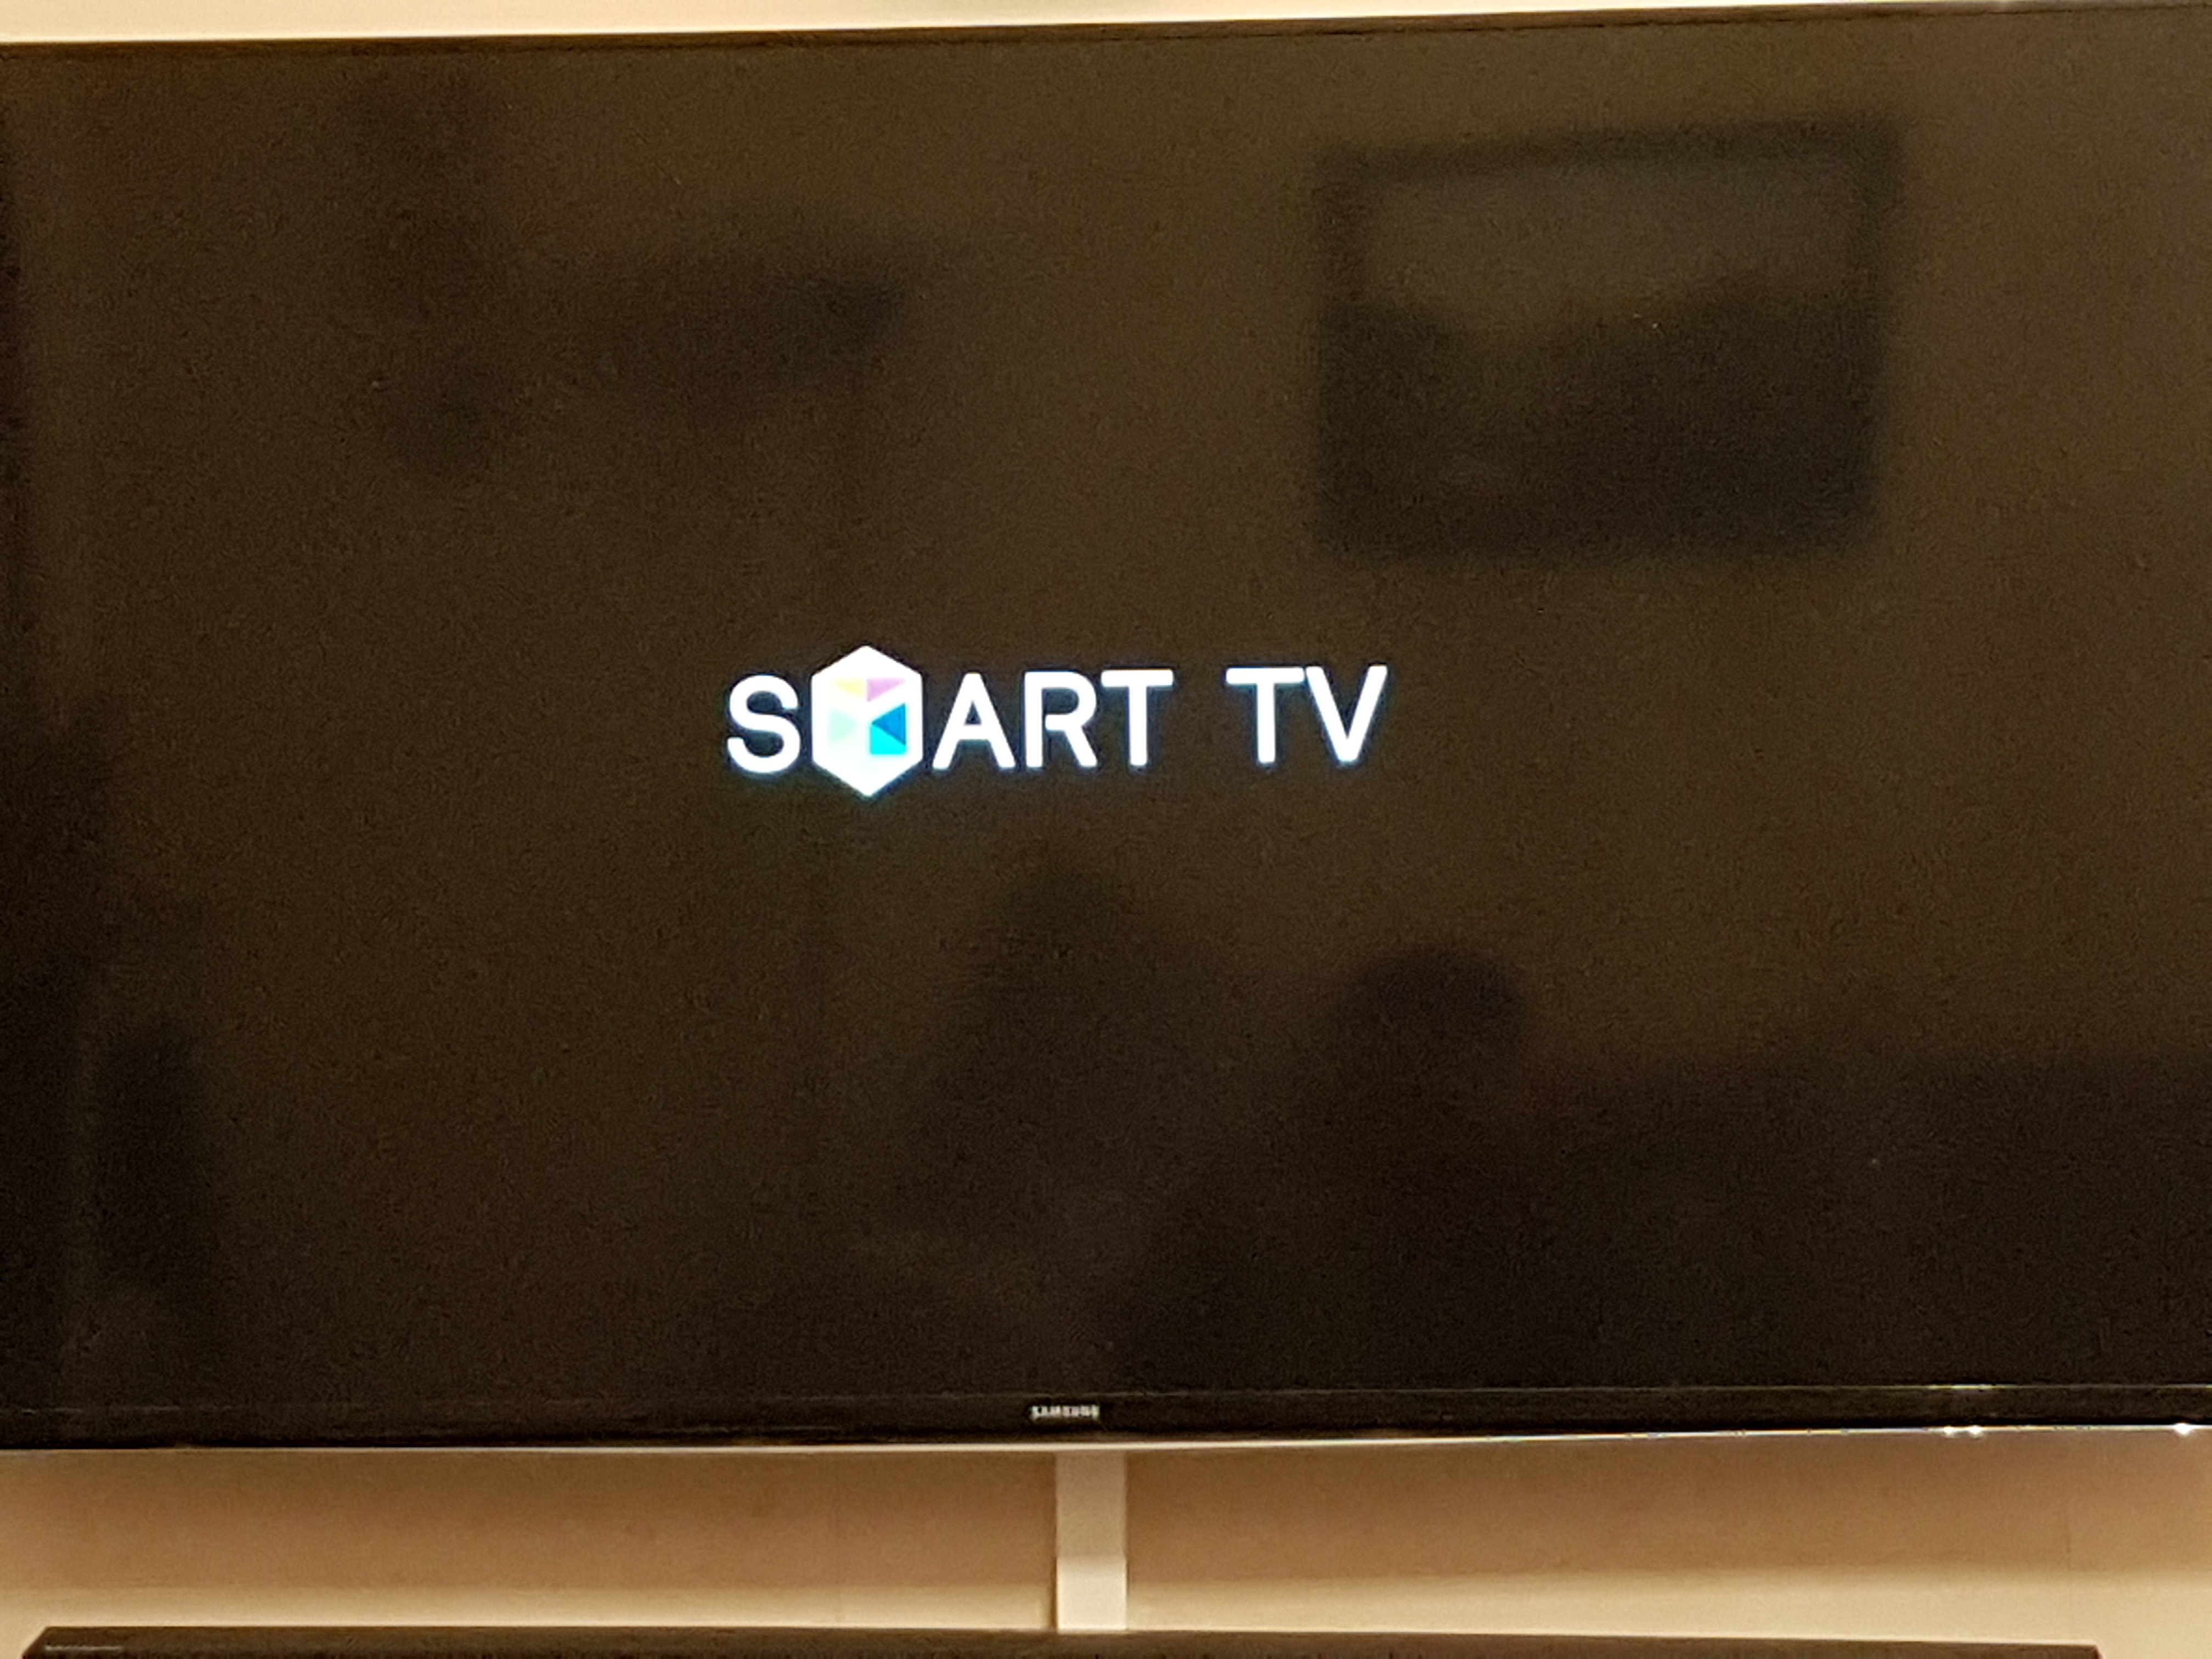 samsung smart tv stuck on start screen logo - Samsung Community